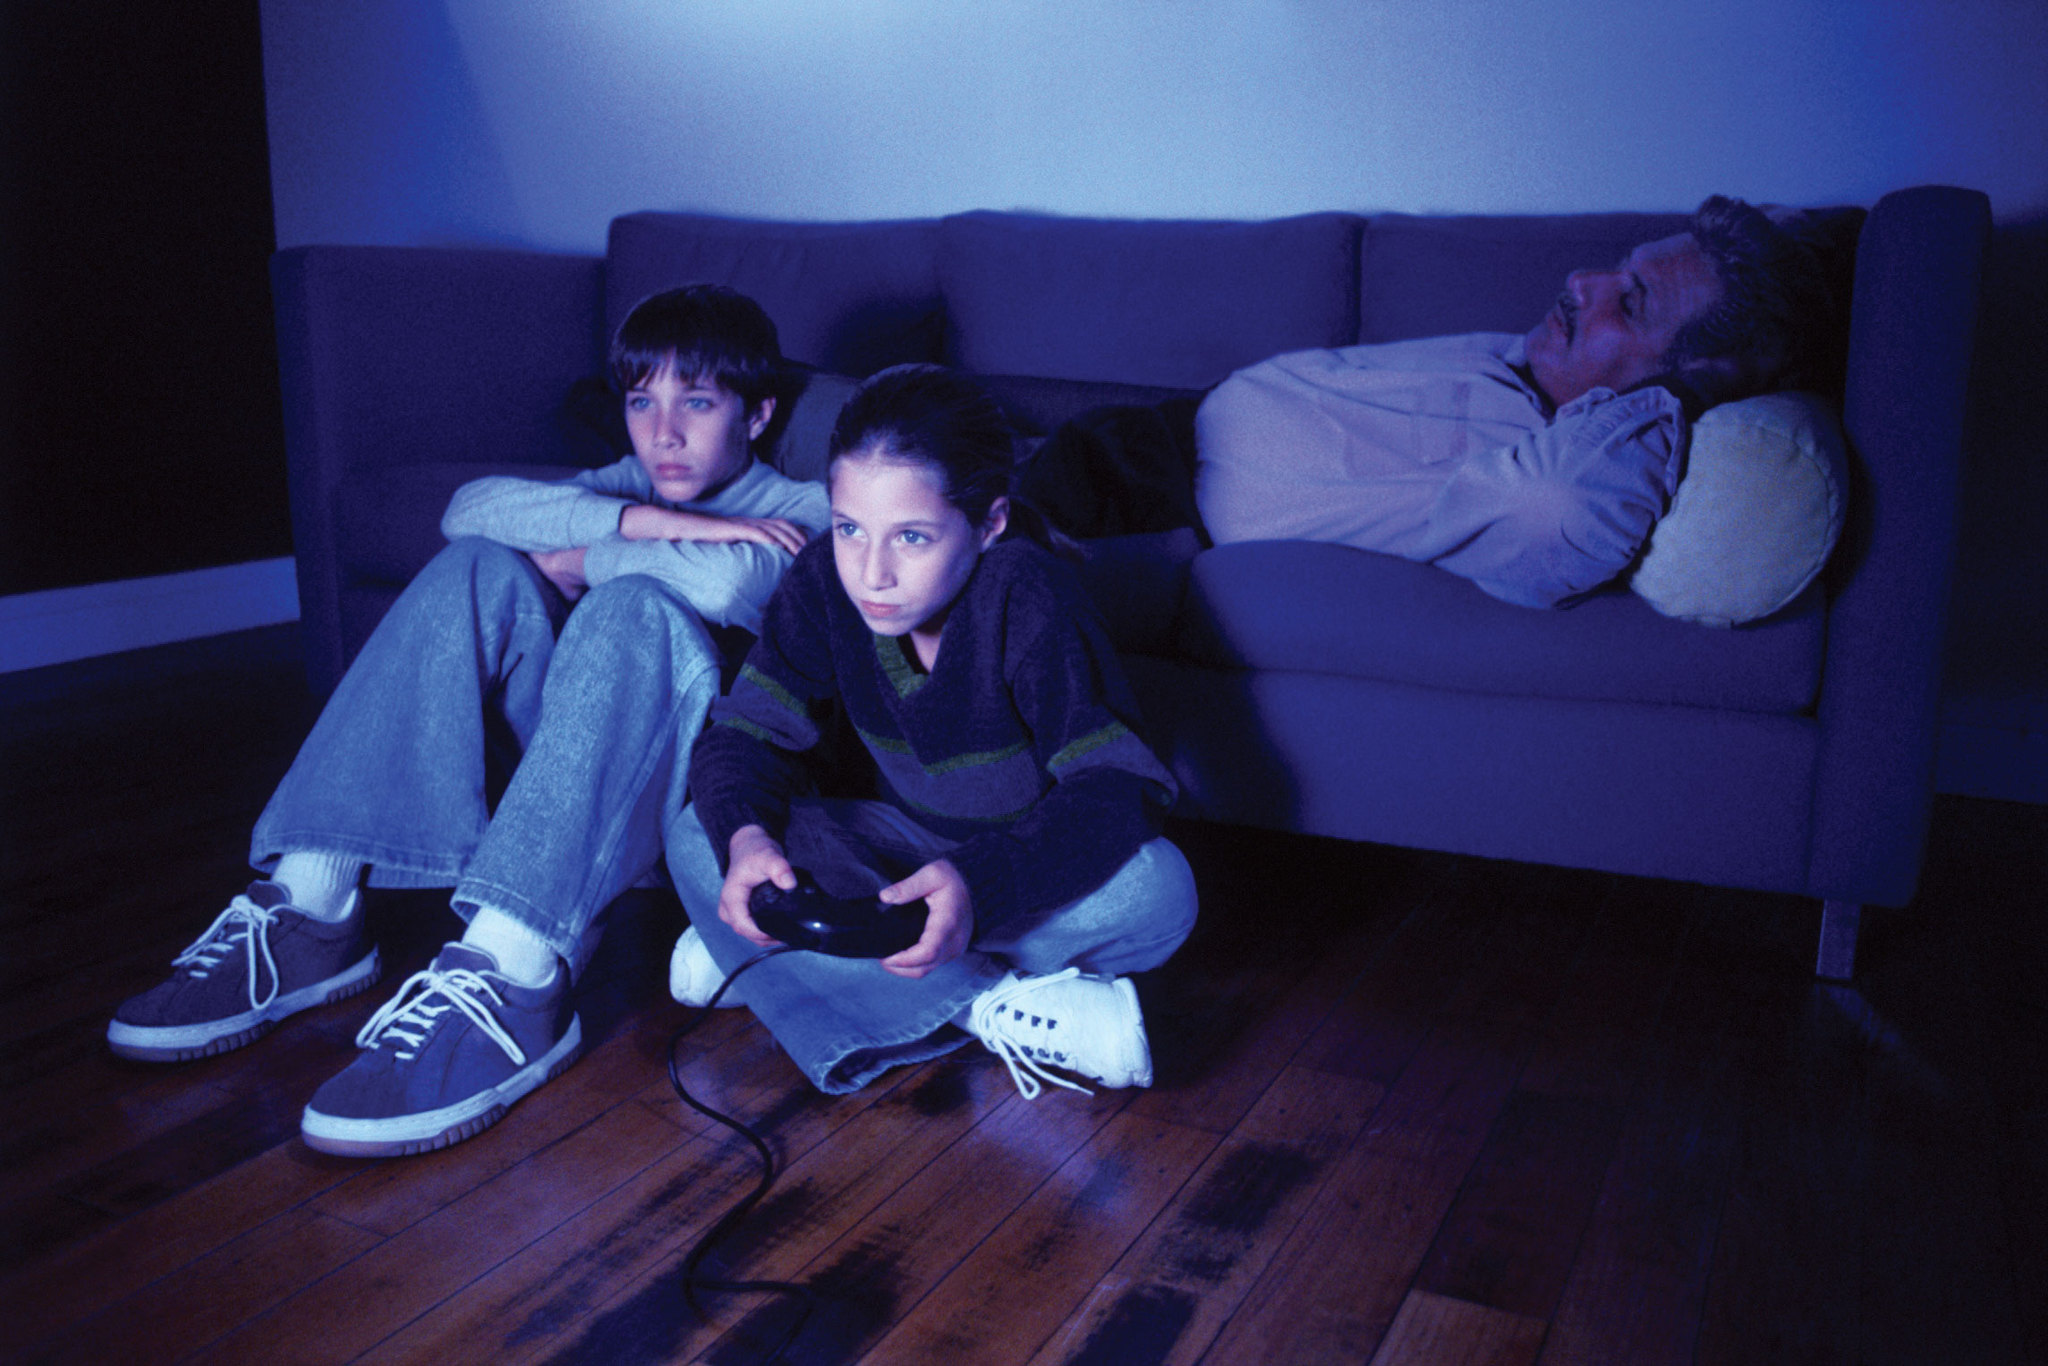 video game addiction 3 essay How to diagnose compulsive gaming due to insufficient supporting evidence and studies, video game addiction has yet to be recognized by accepted standards as a true disorder.